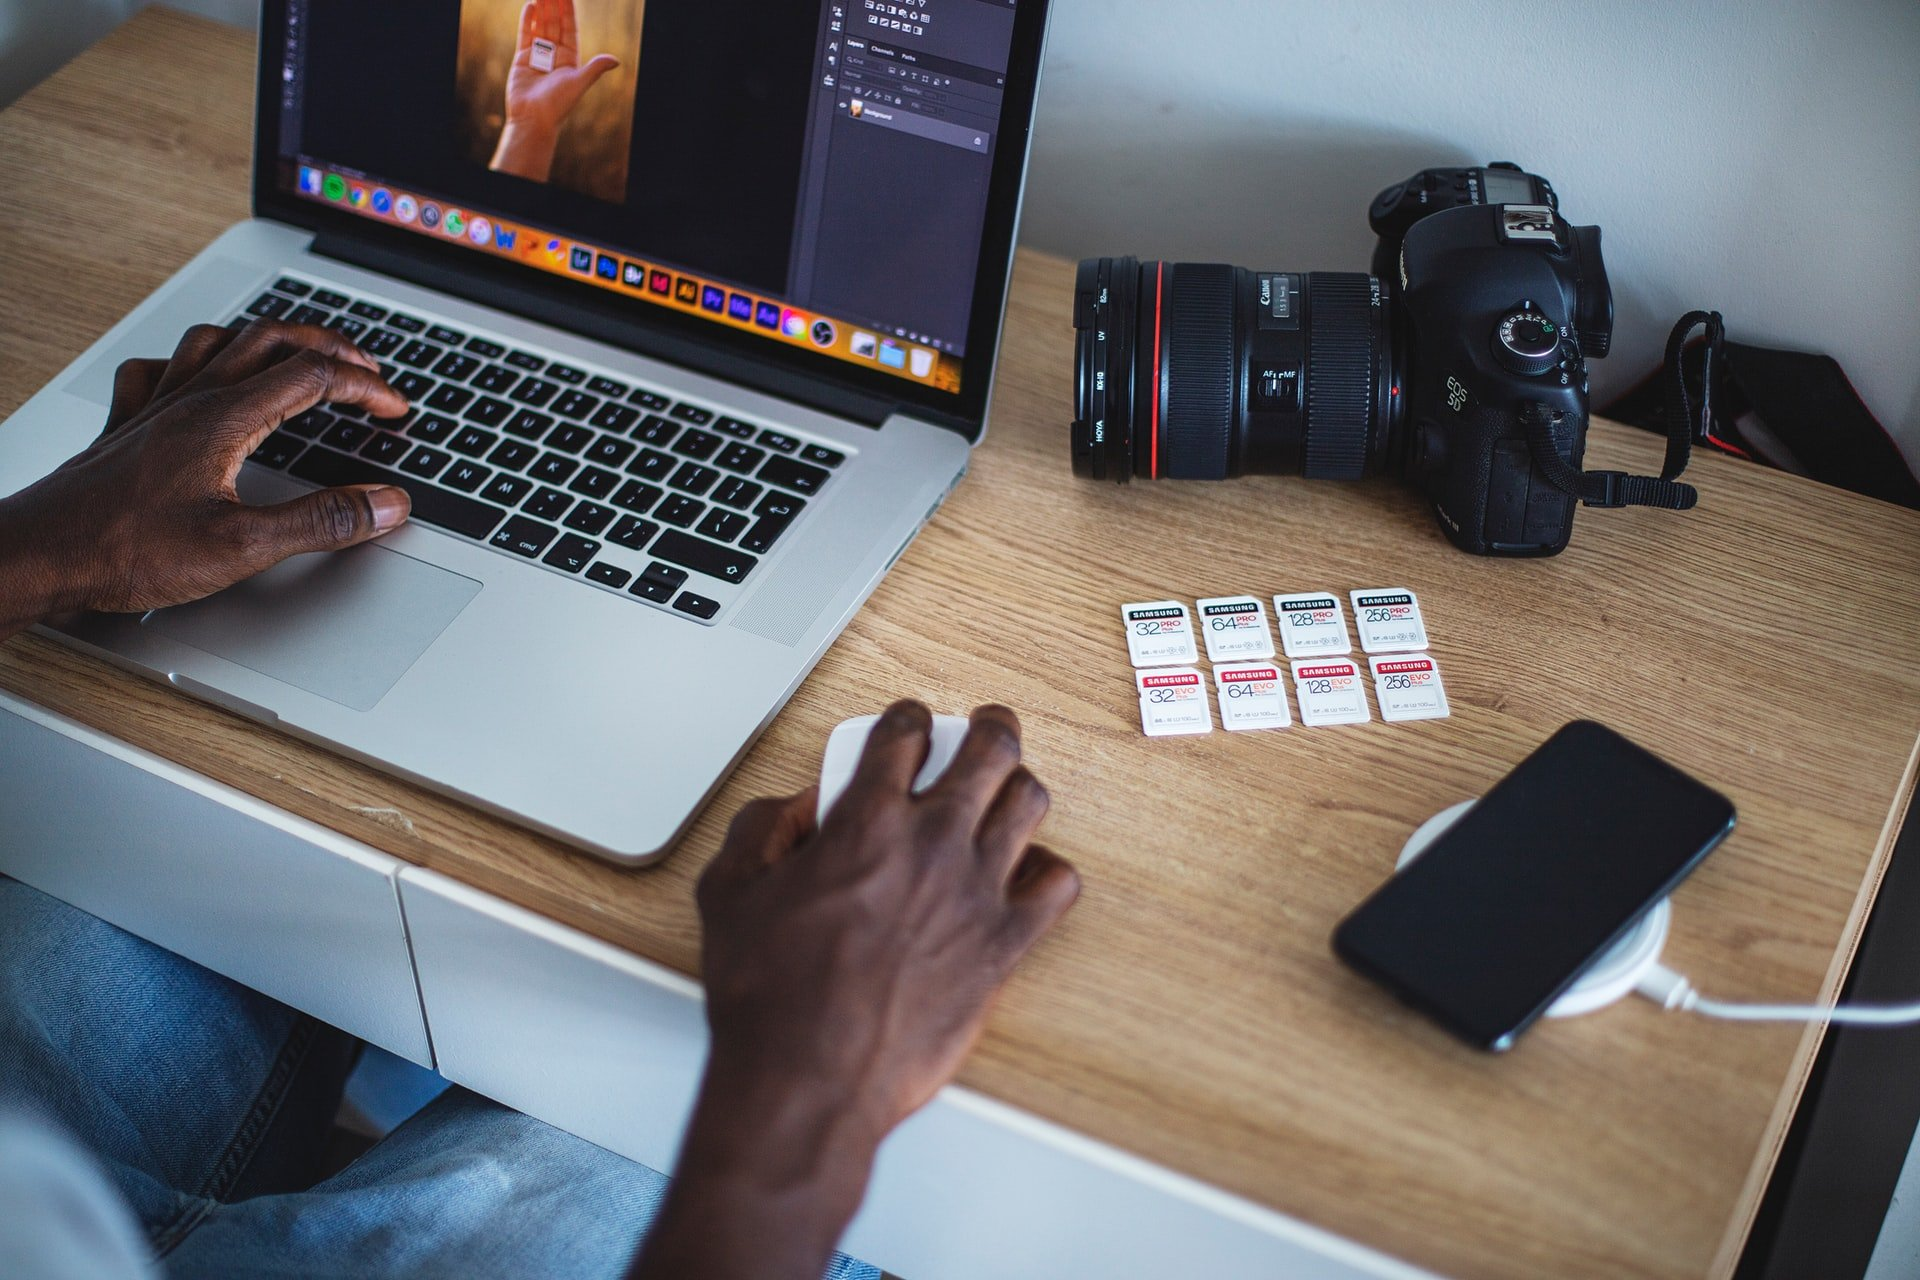 person working at computer, editing photos, dslr camera on table with smartphone